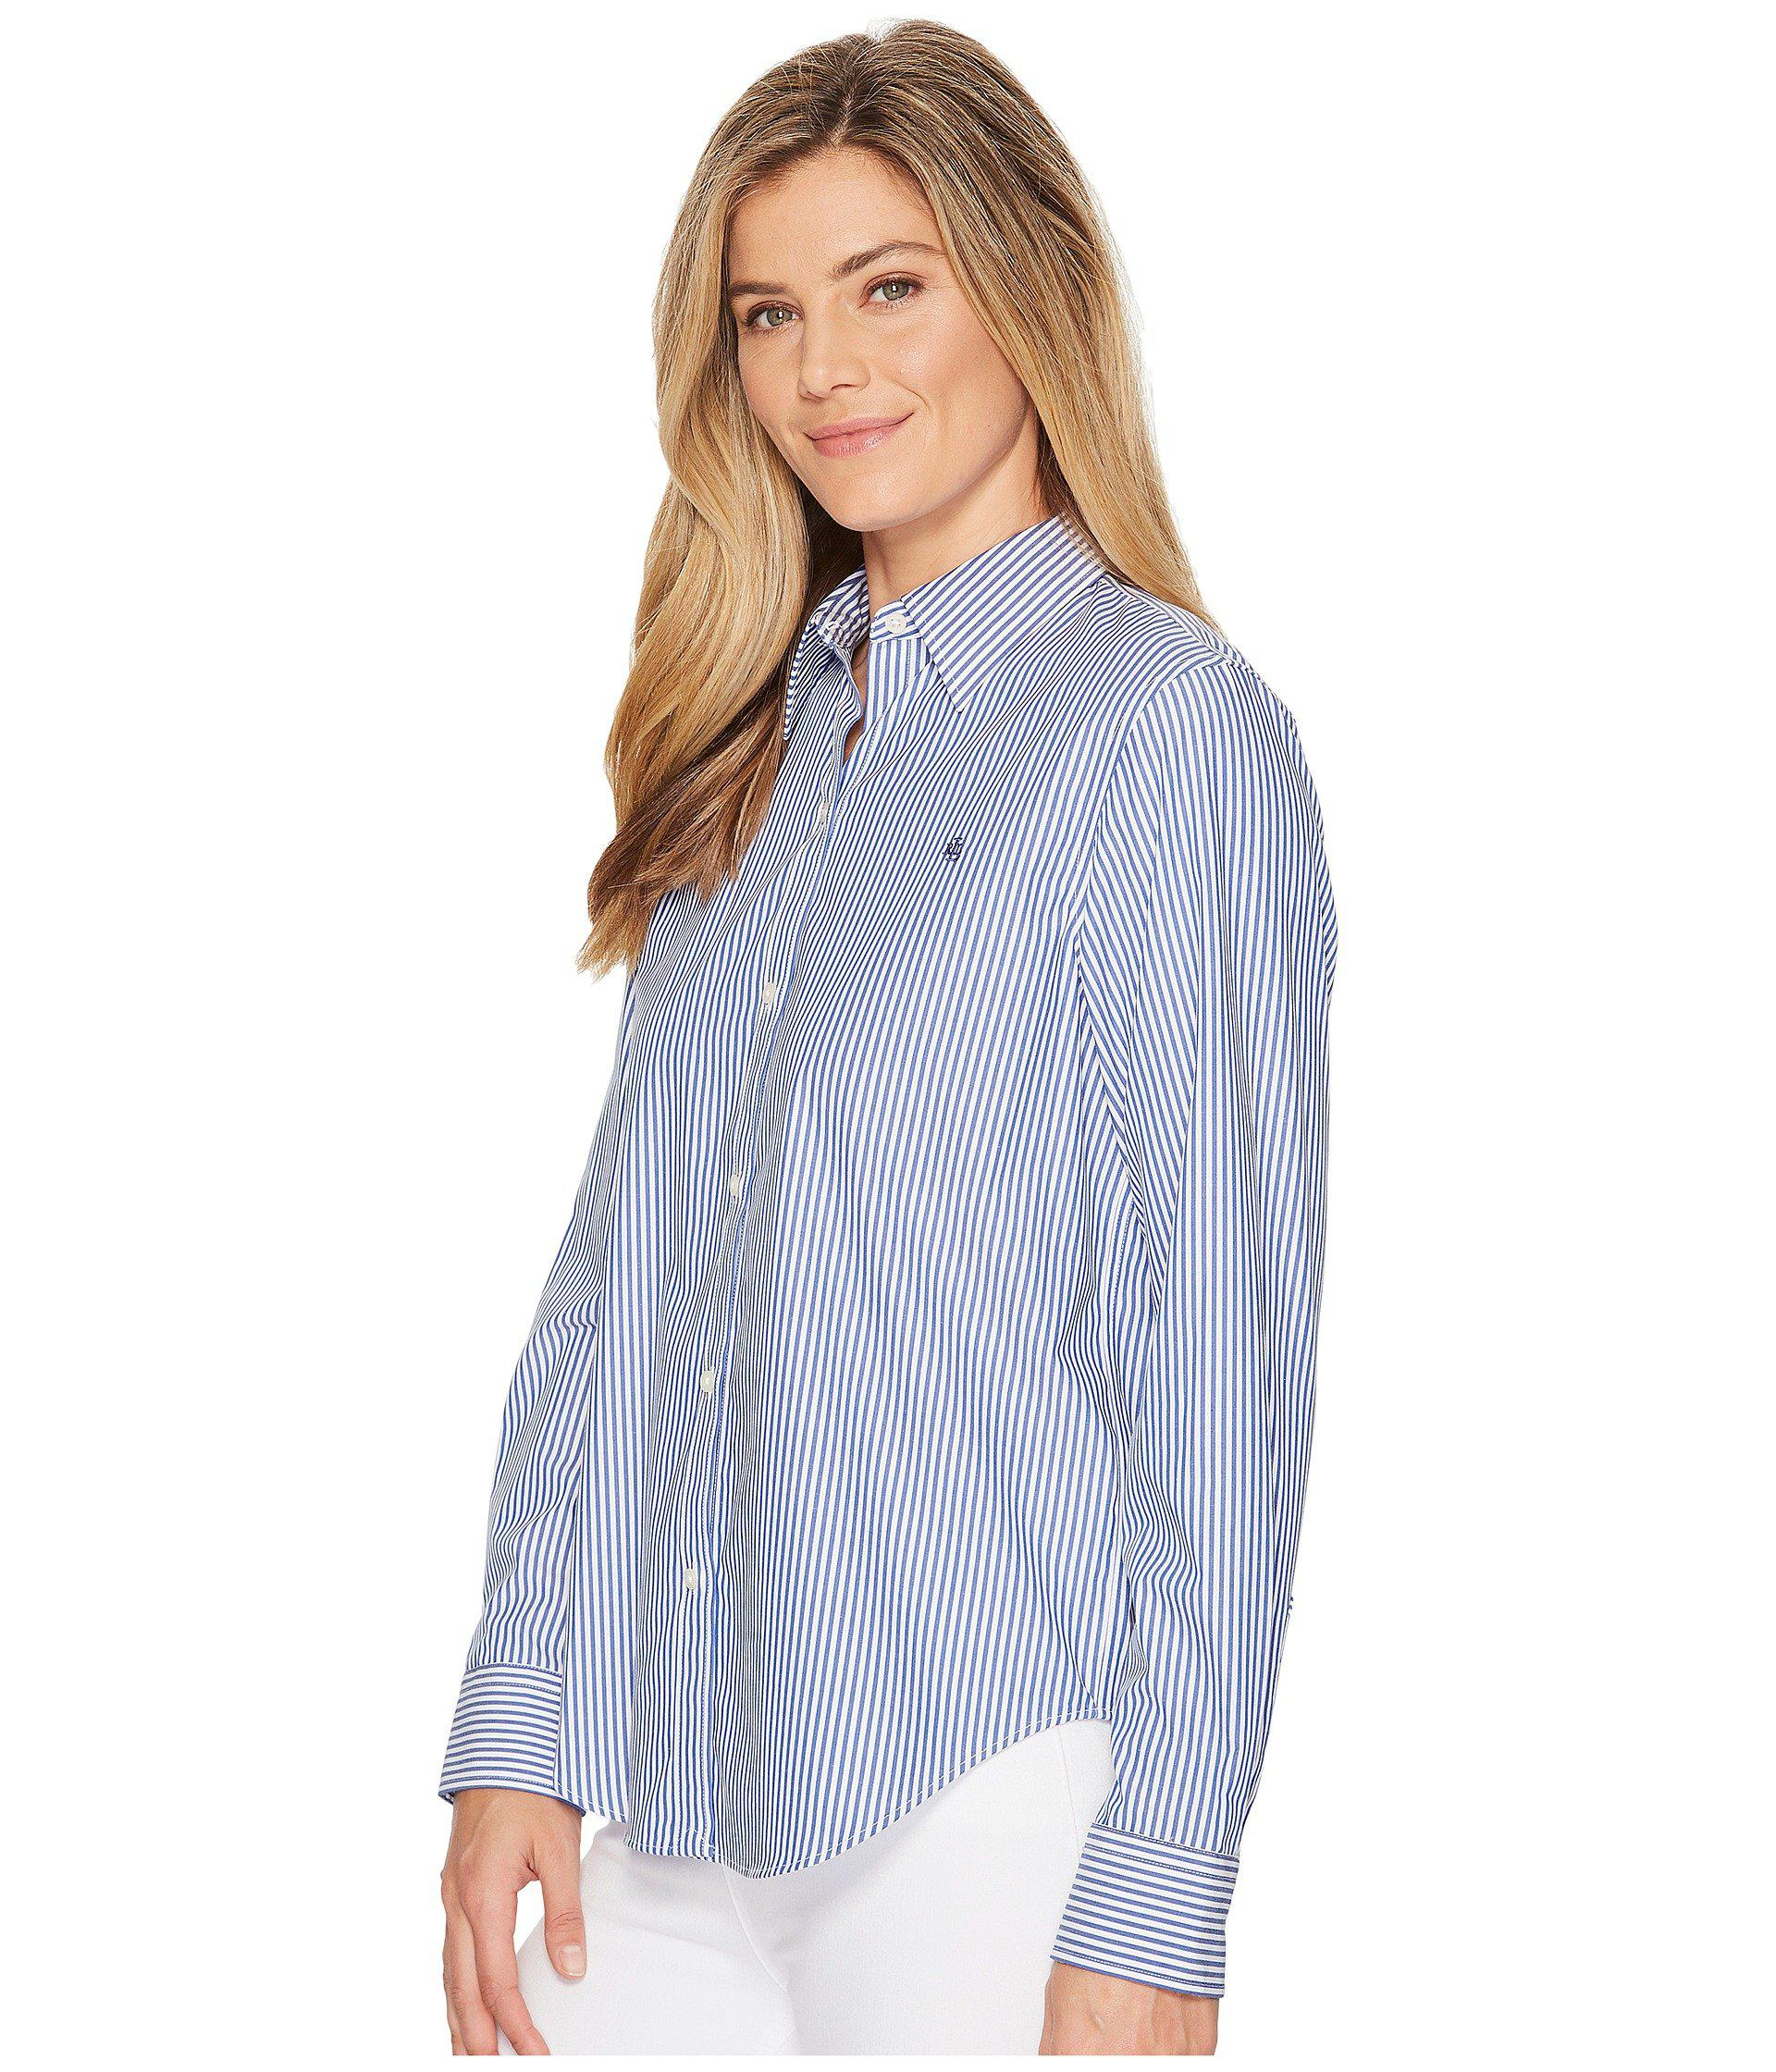 e190229f9dad0 Lyst - Lauren by Ralph Lauren Plus Size Striped Cotton Shirt (blue white) Women s  Clothing in Blue - Save 8%